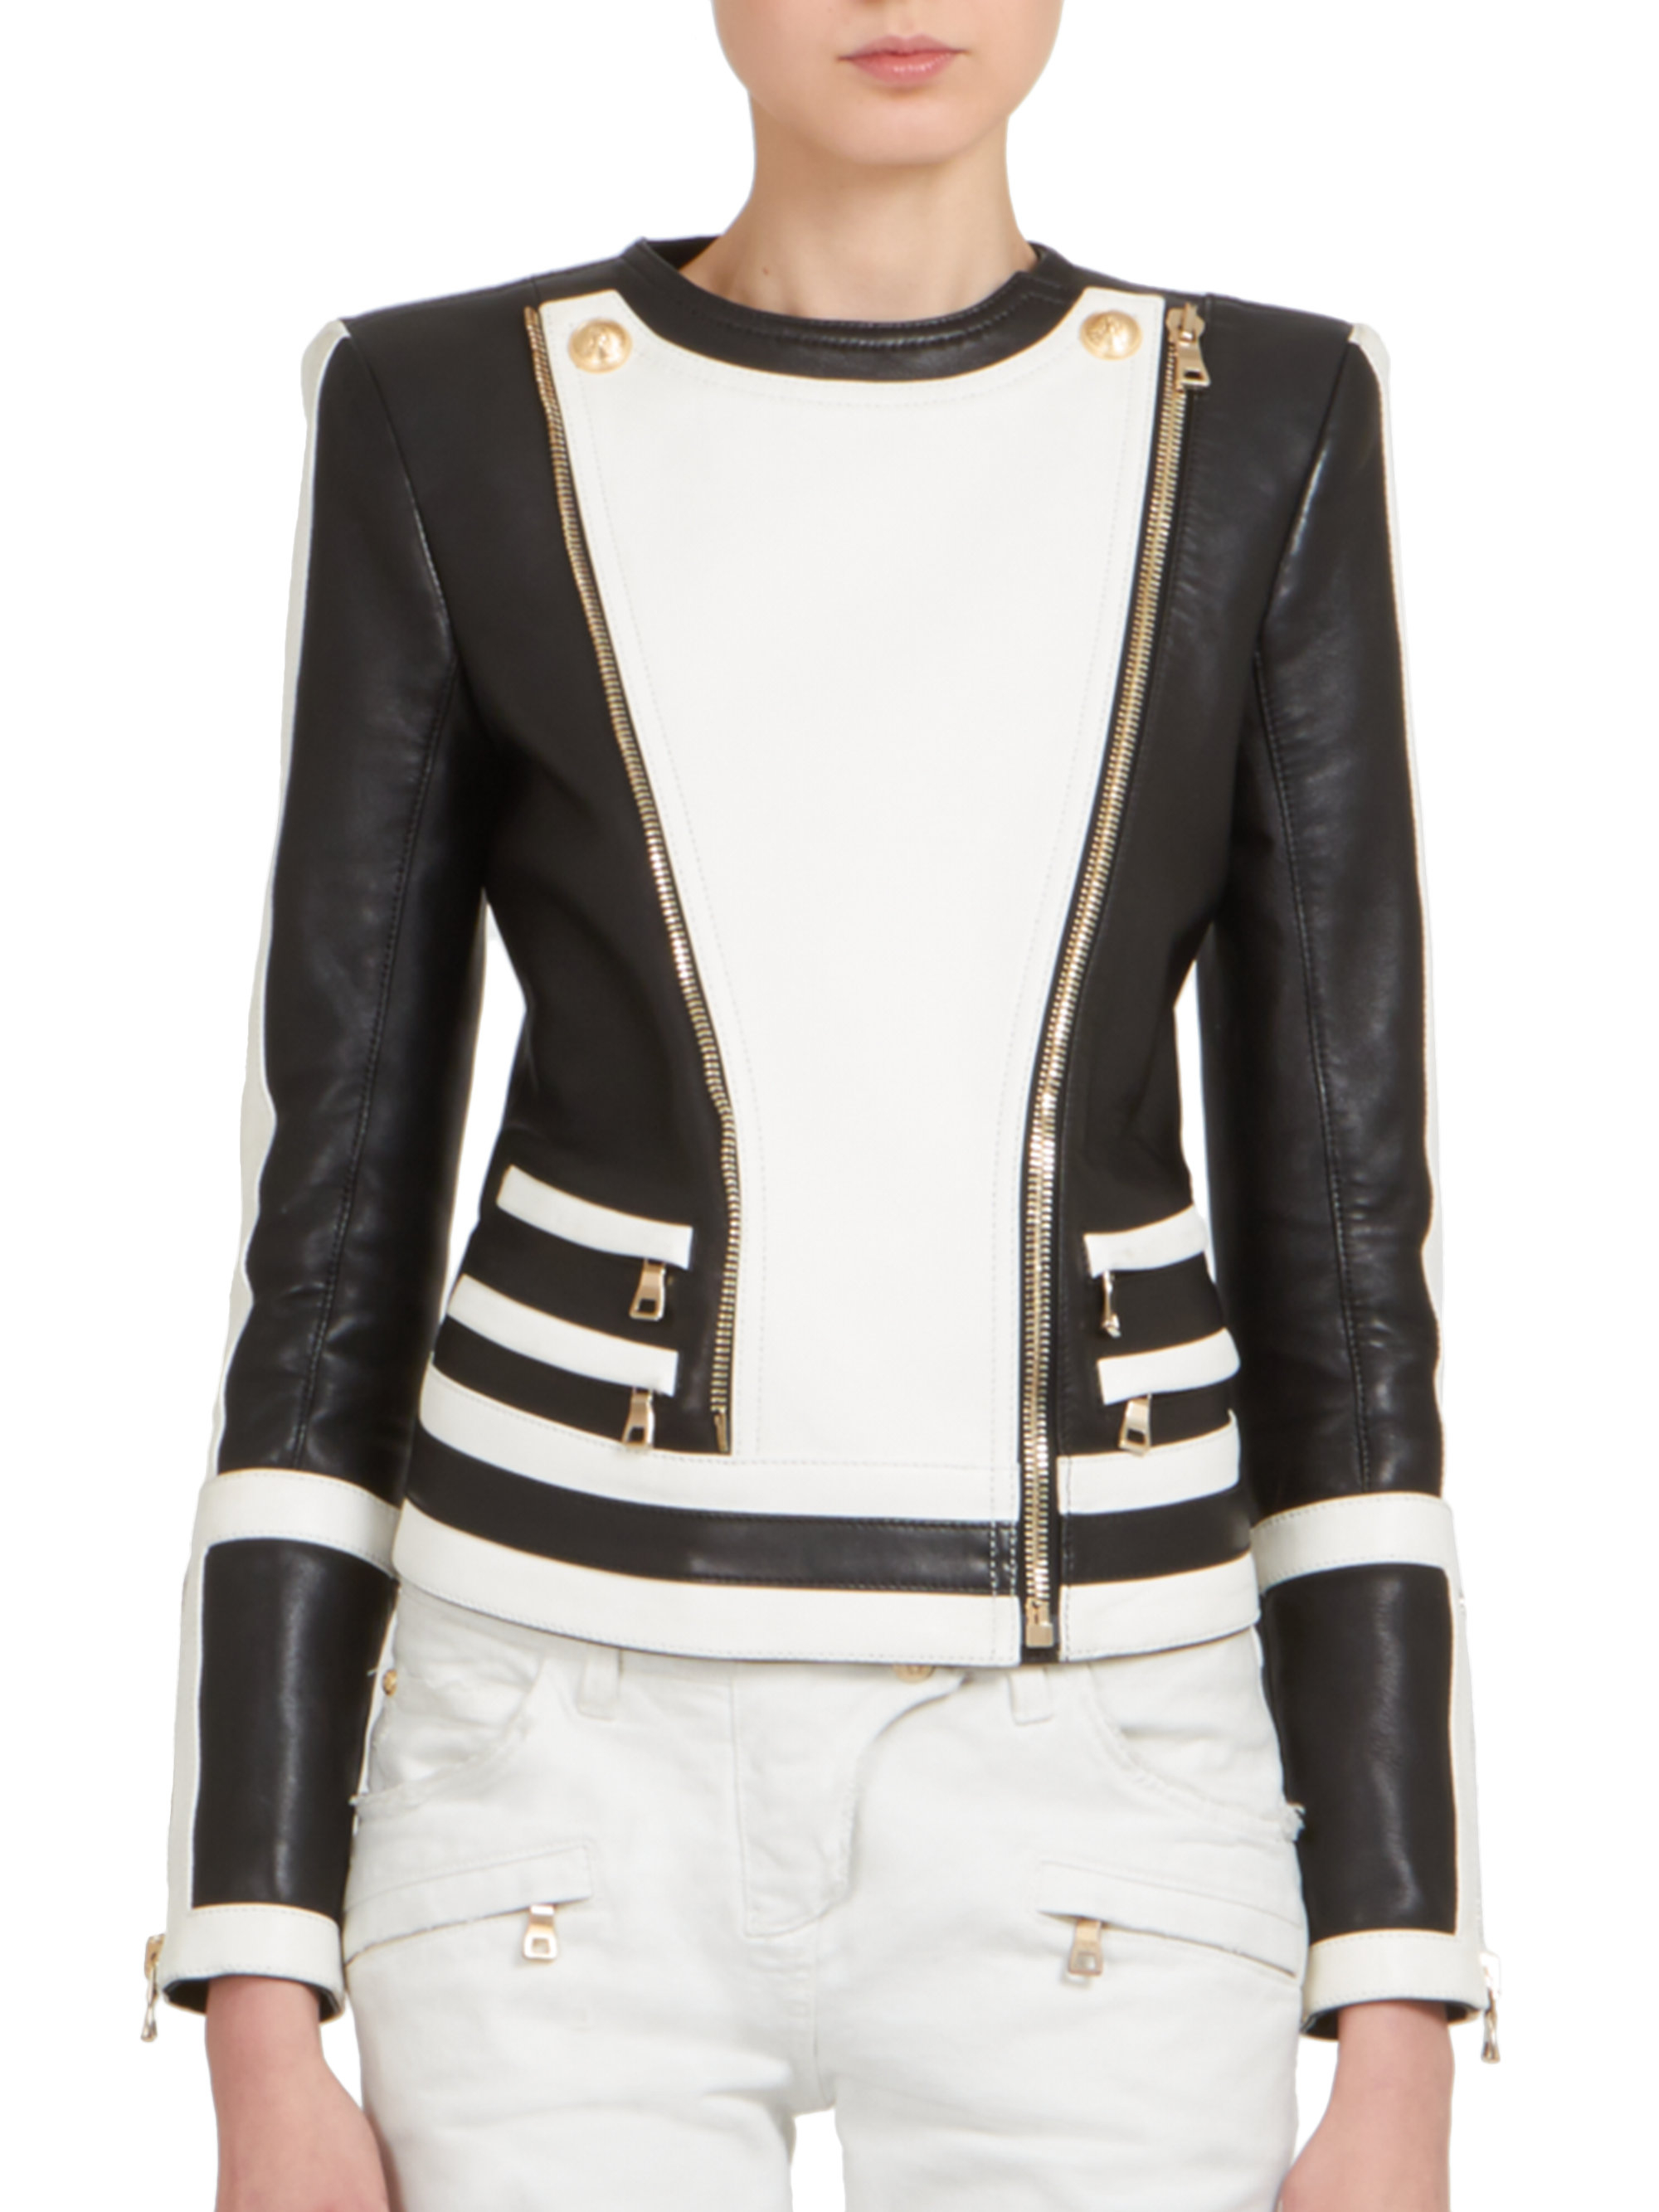 Lyst - Balmain Bicolor Leather Moto Jacket in Black